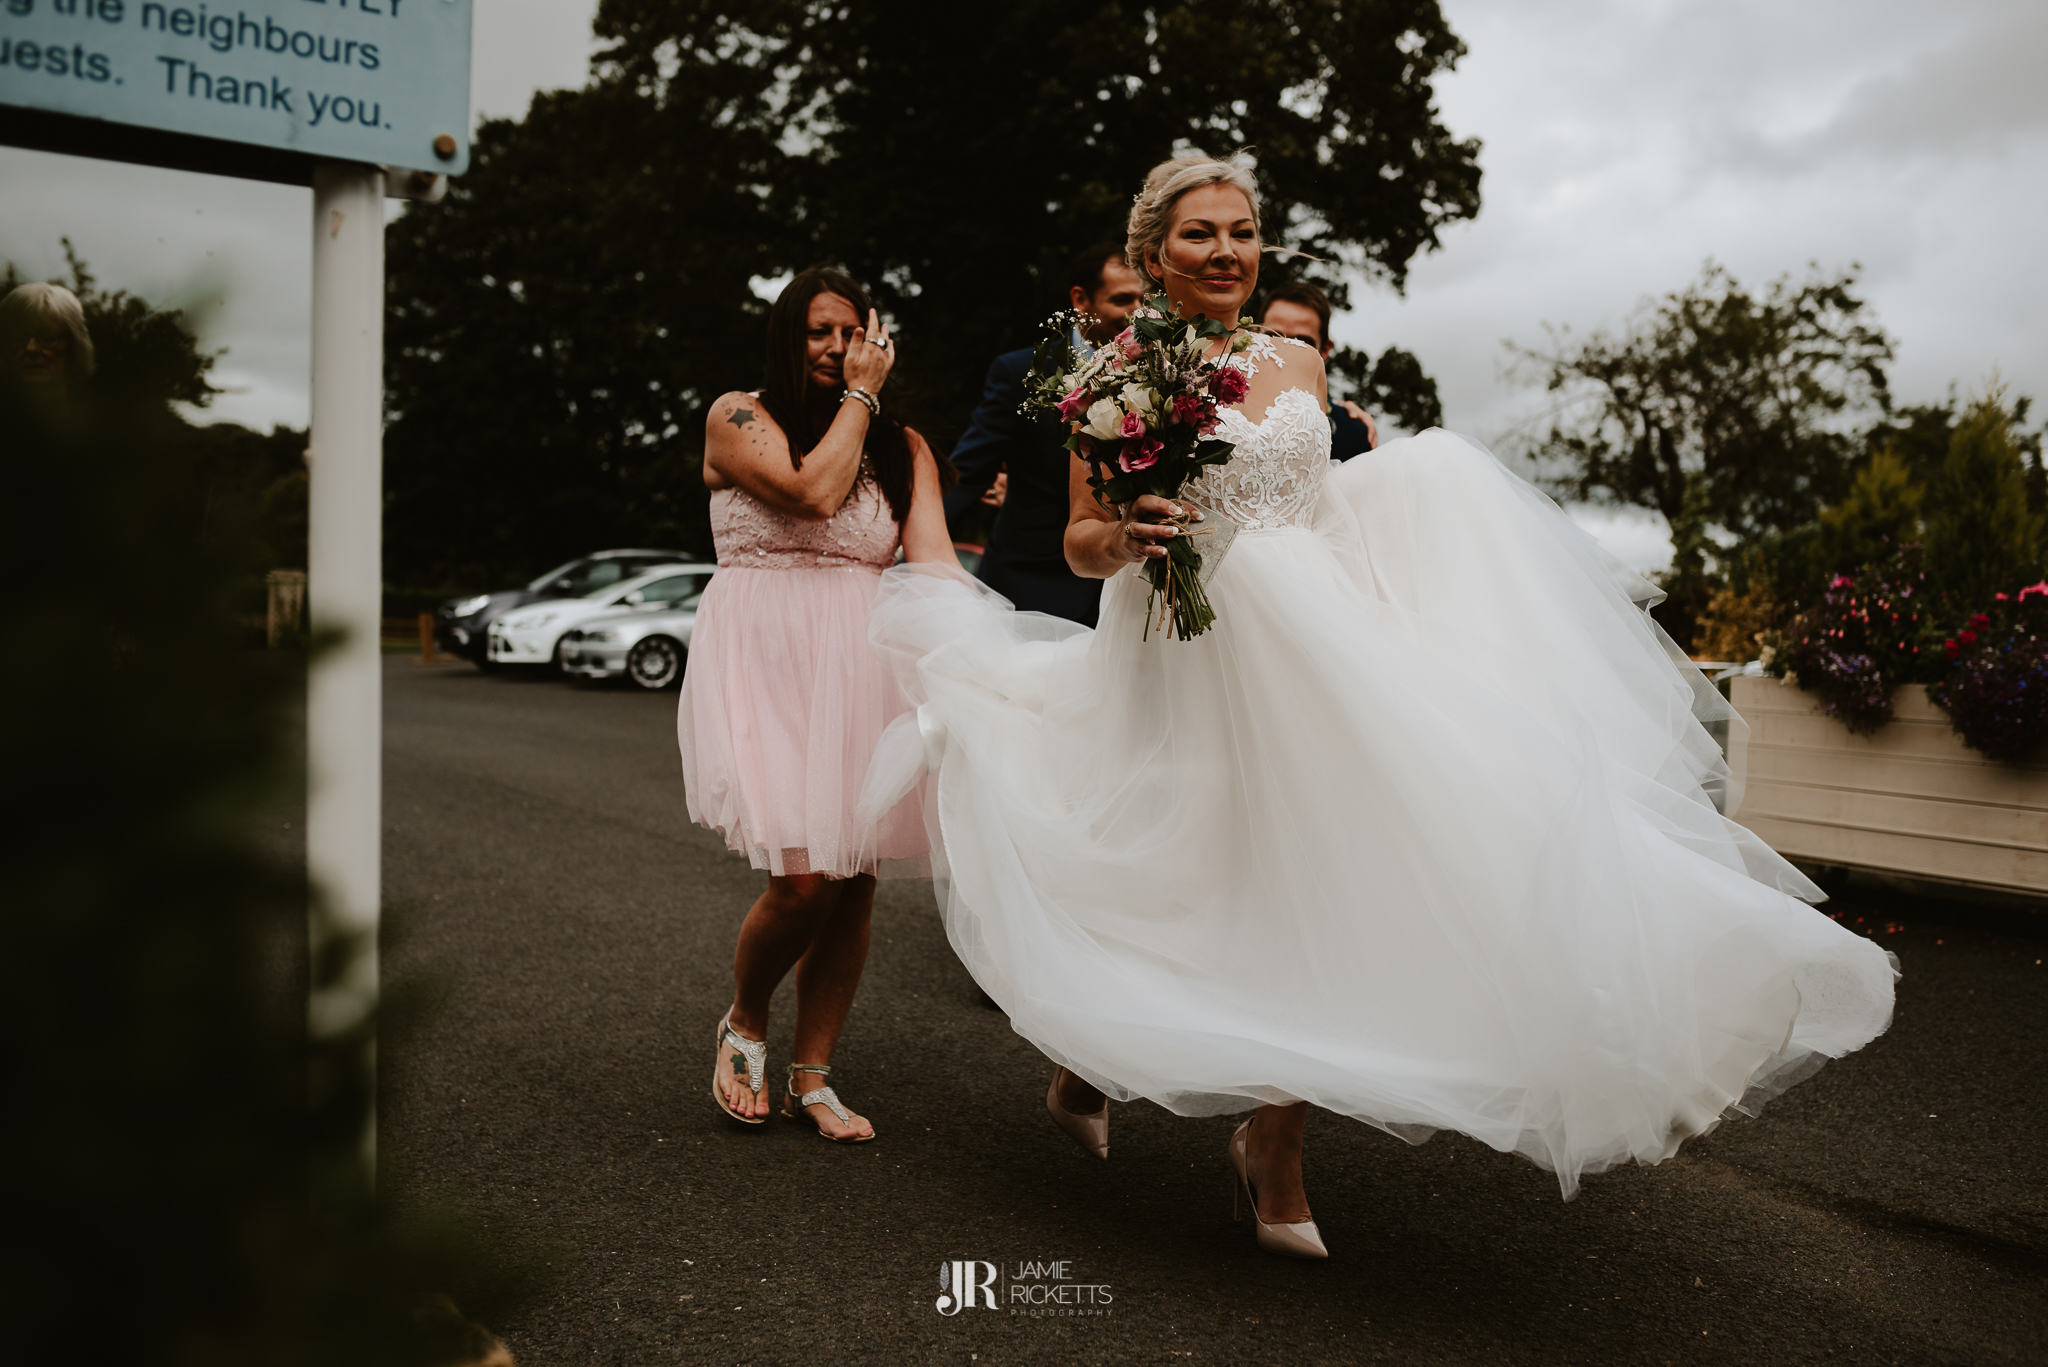 Wroxeter-Hotel-Wedding-Photography-In-Shropshire-By-Shropshire-Wedding-Photographer-Jamie-Ricketts-071.JPG